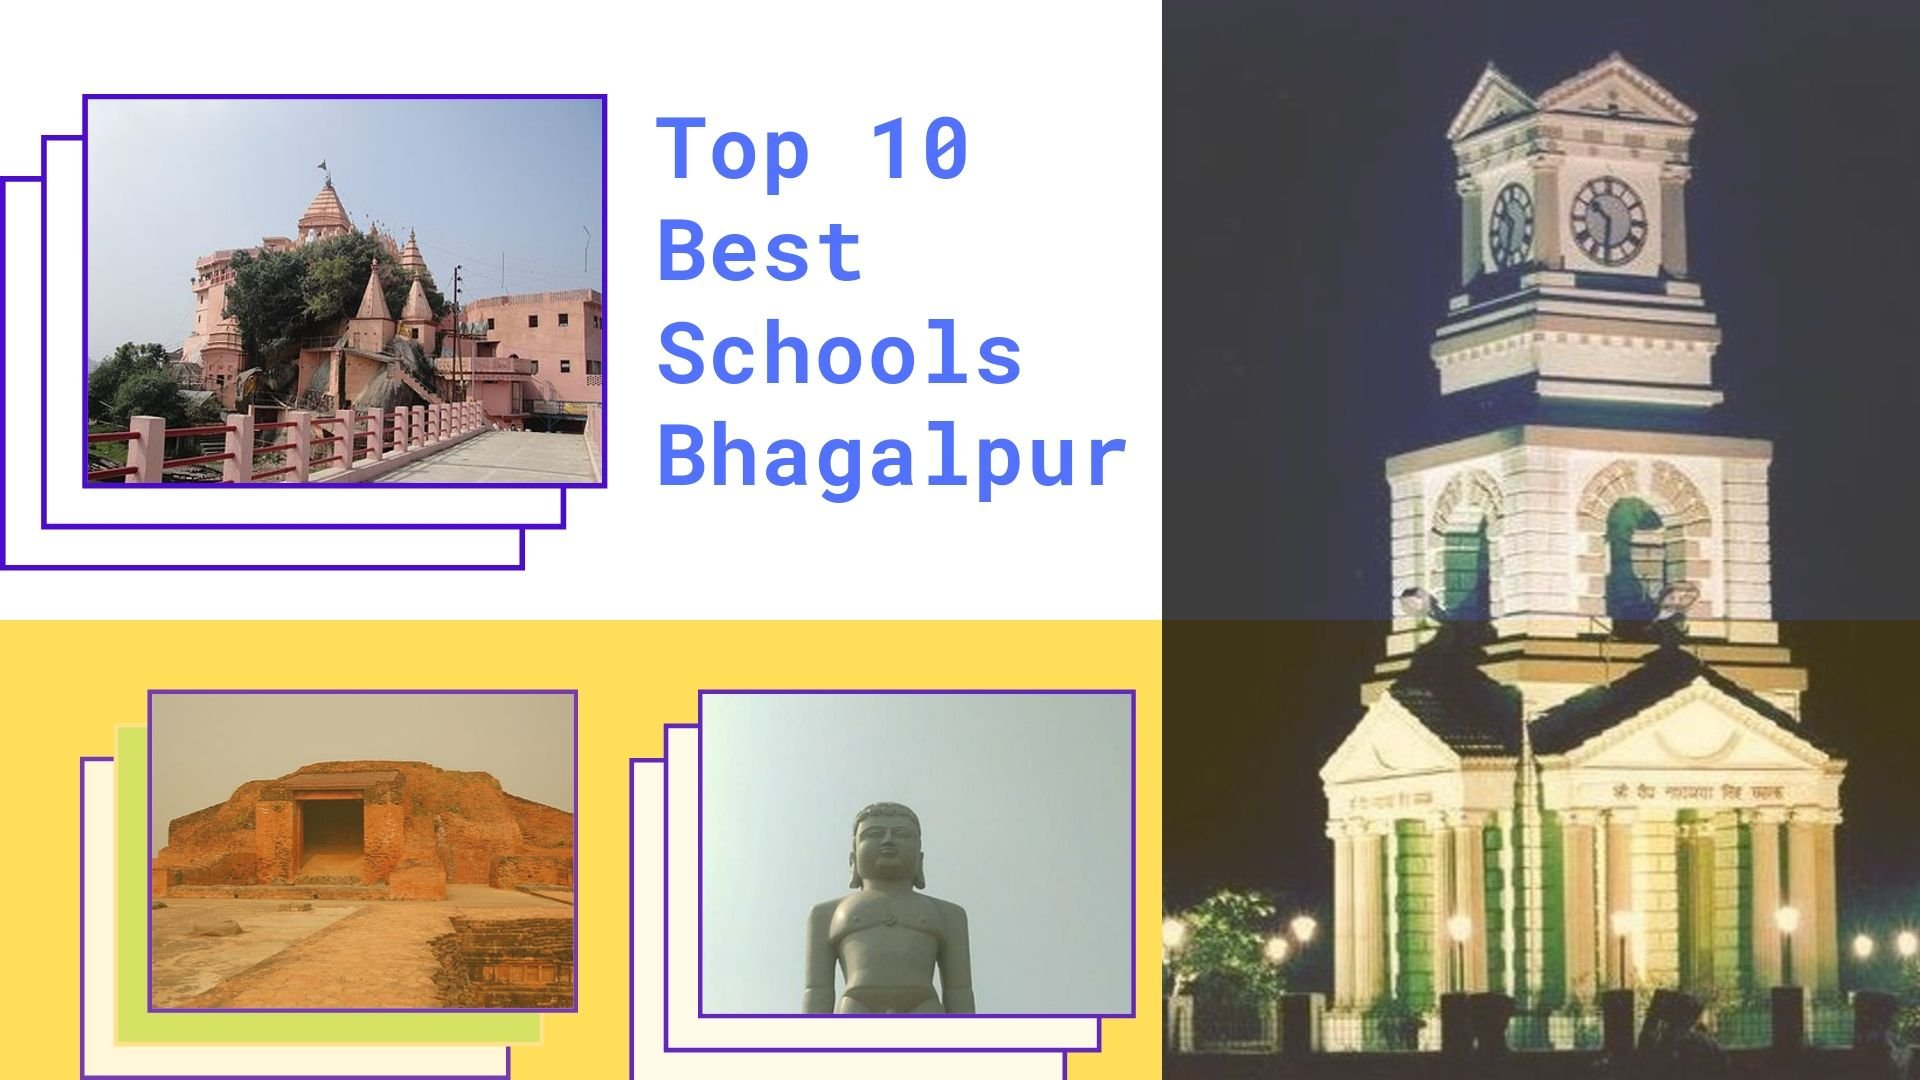 Top 10 Best Schools in Bhagalpur